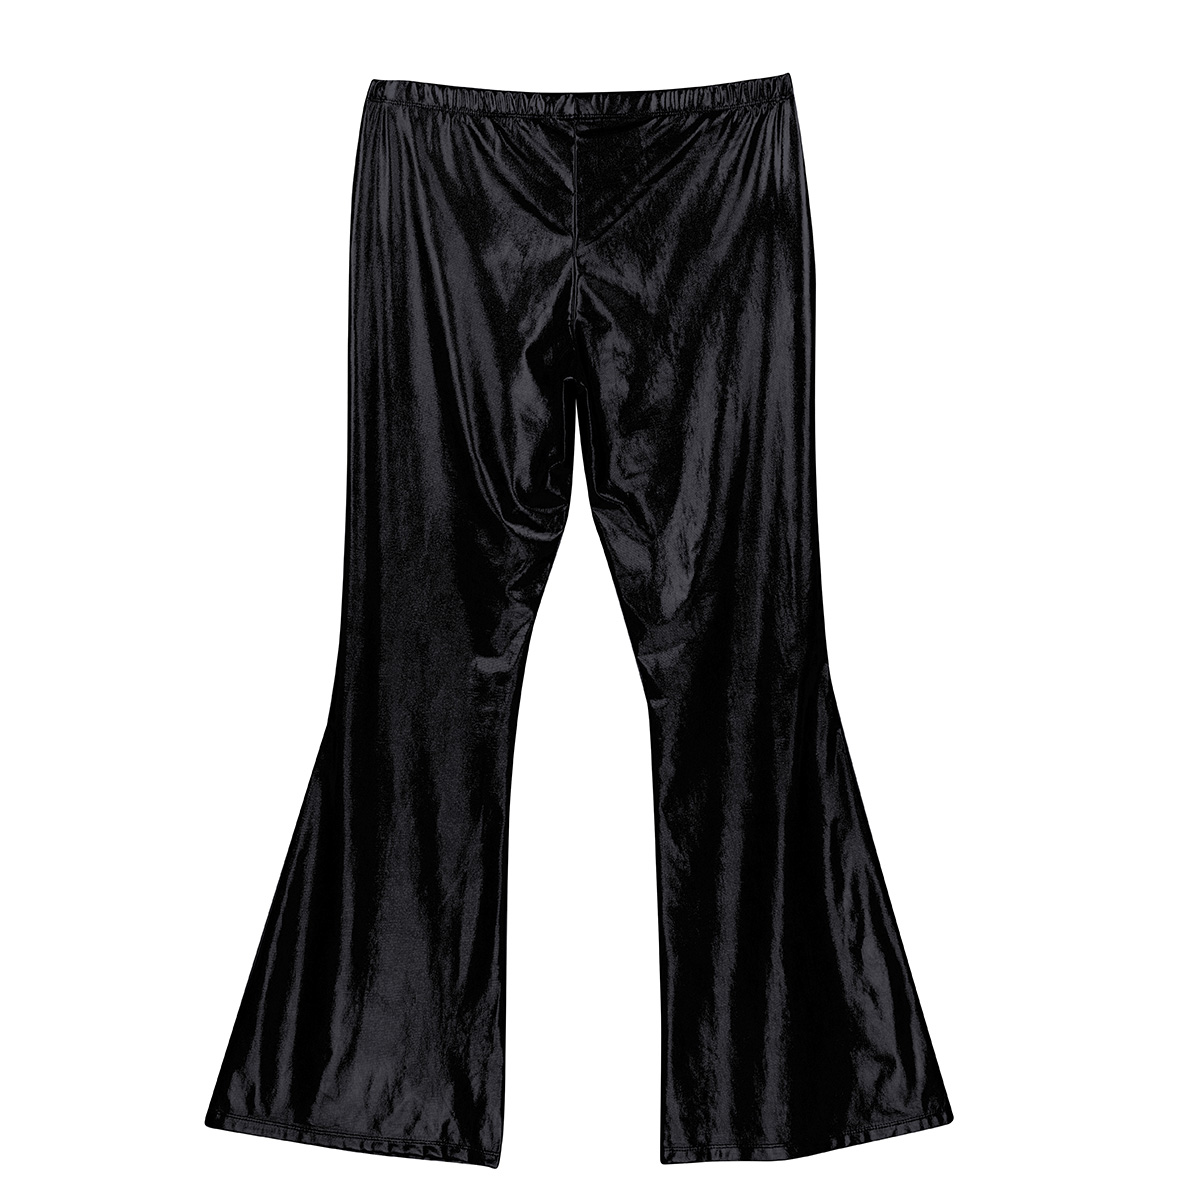 ChicTry Adults Mens Shiny Metallic Disco Pants with Bell Bottom Flared Long Pants Dude Costume Trousers for 70's Theme Parties 37